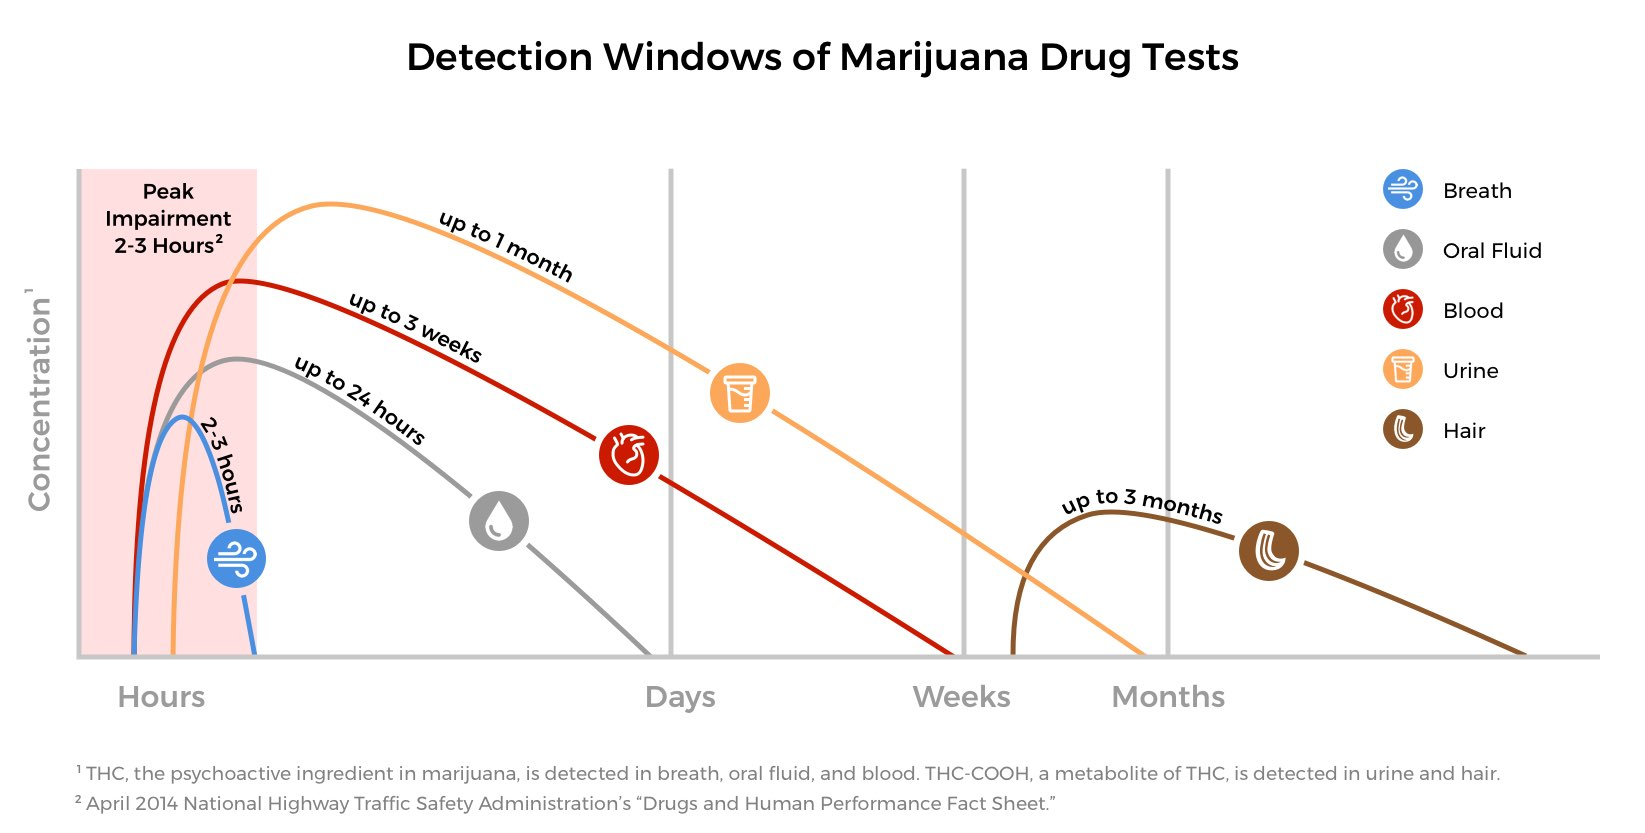 hight resolution of graph of detection windows for various marijuana drug tests